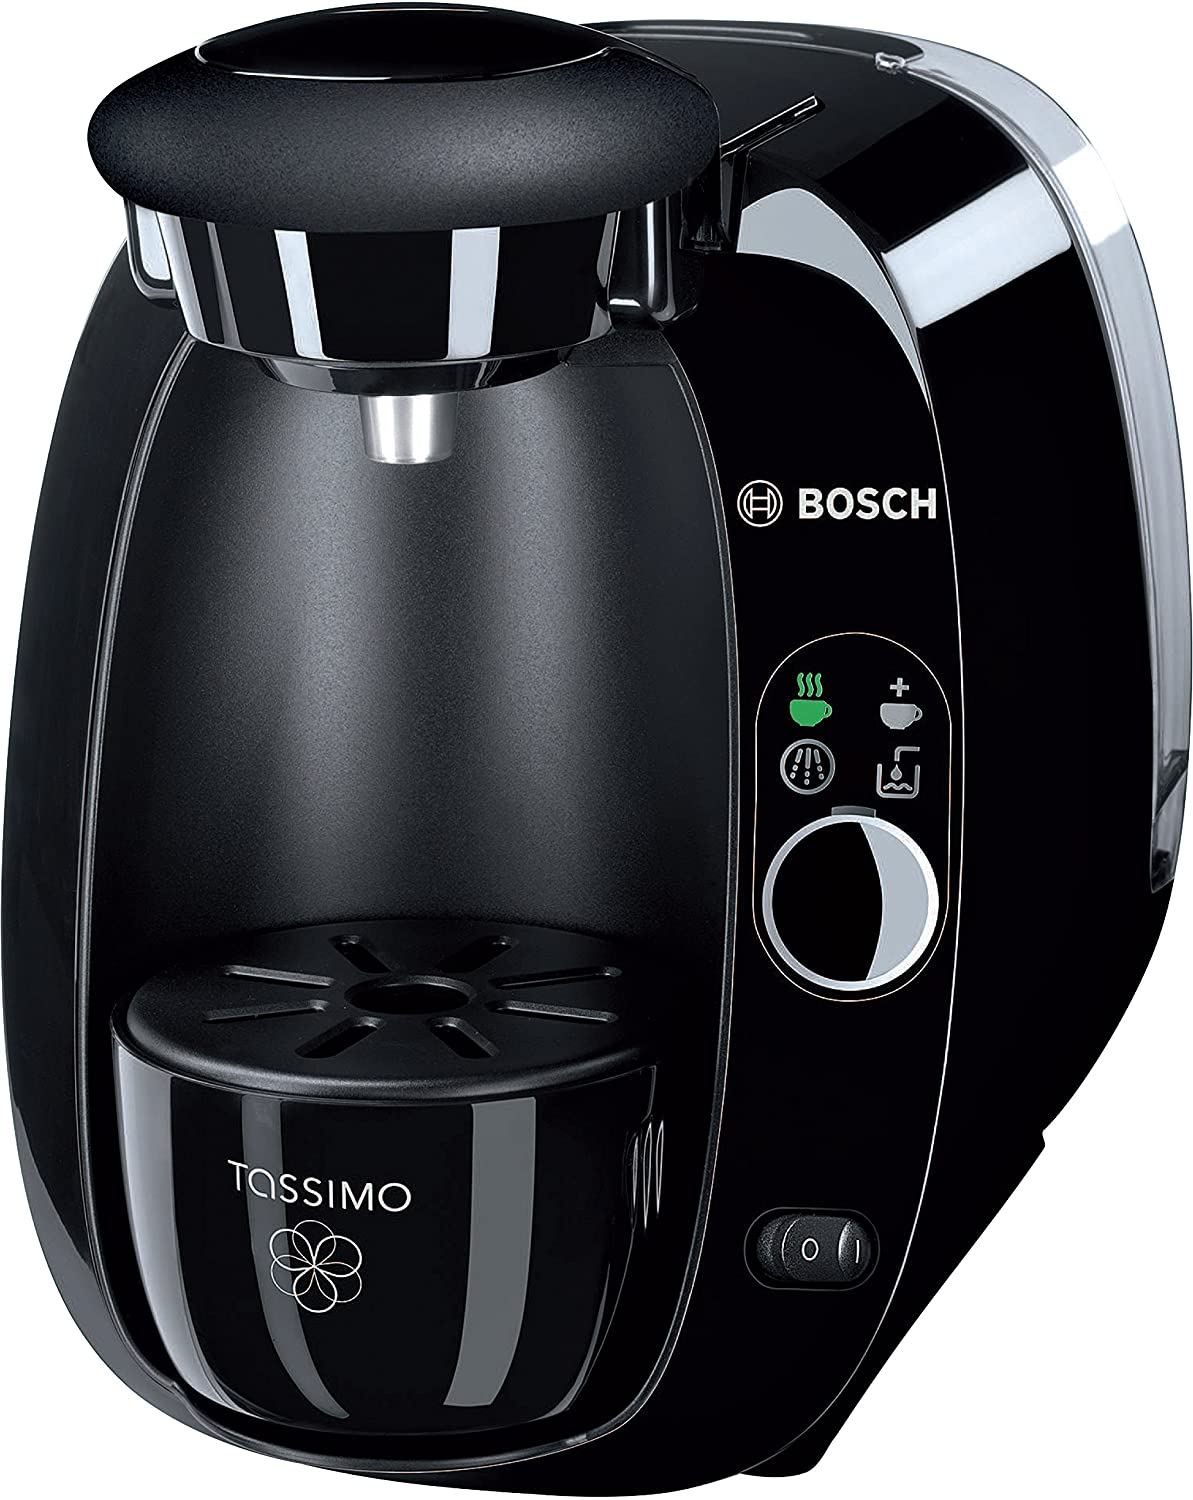 bosch tassimo t20 amia hot beverage coffee espresso maker machine tas2002gb new 4242002644998 ebay. Black Bedroom Furniture Sets. Home Design Ideas